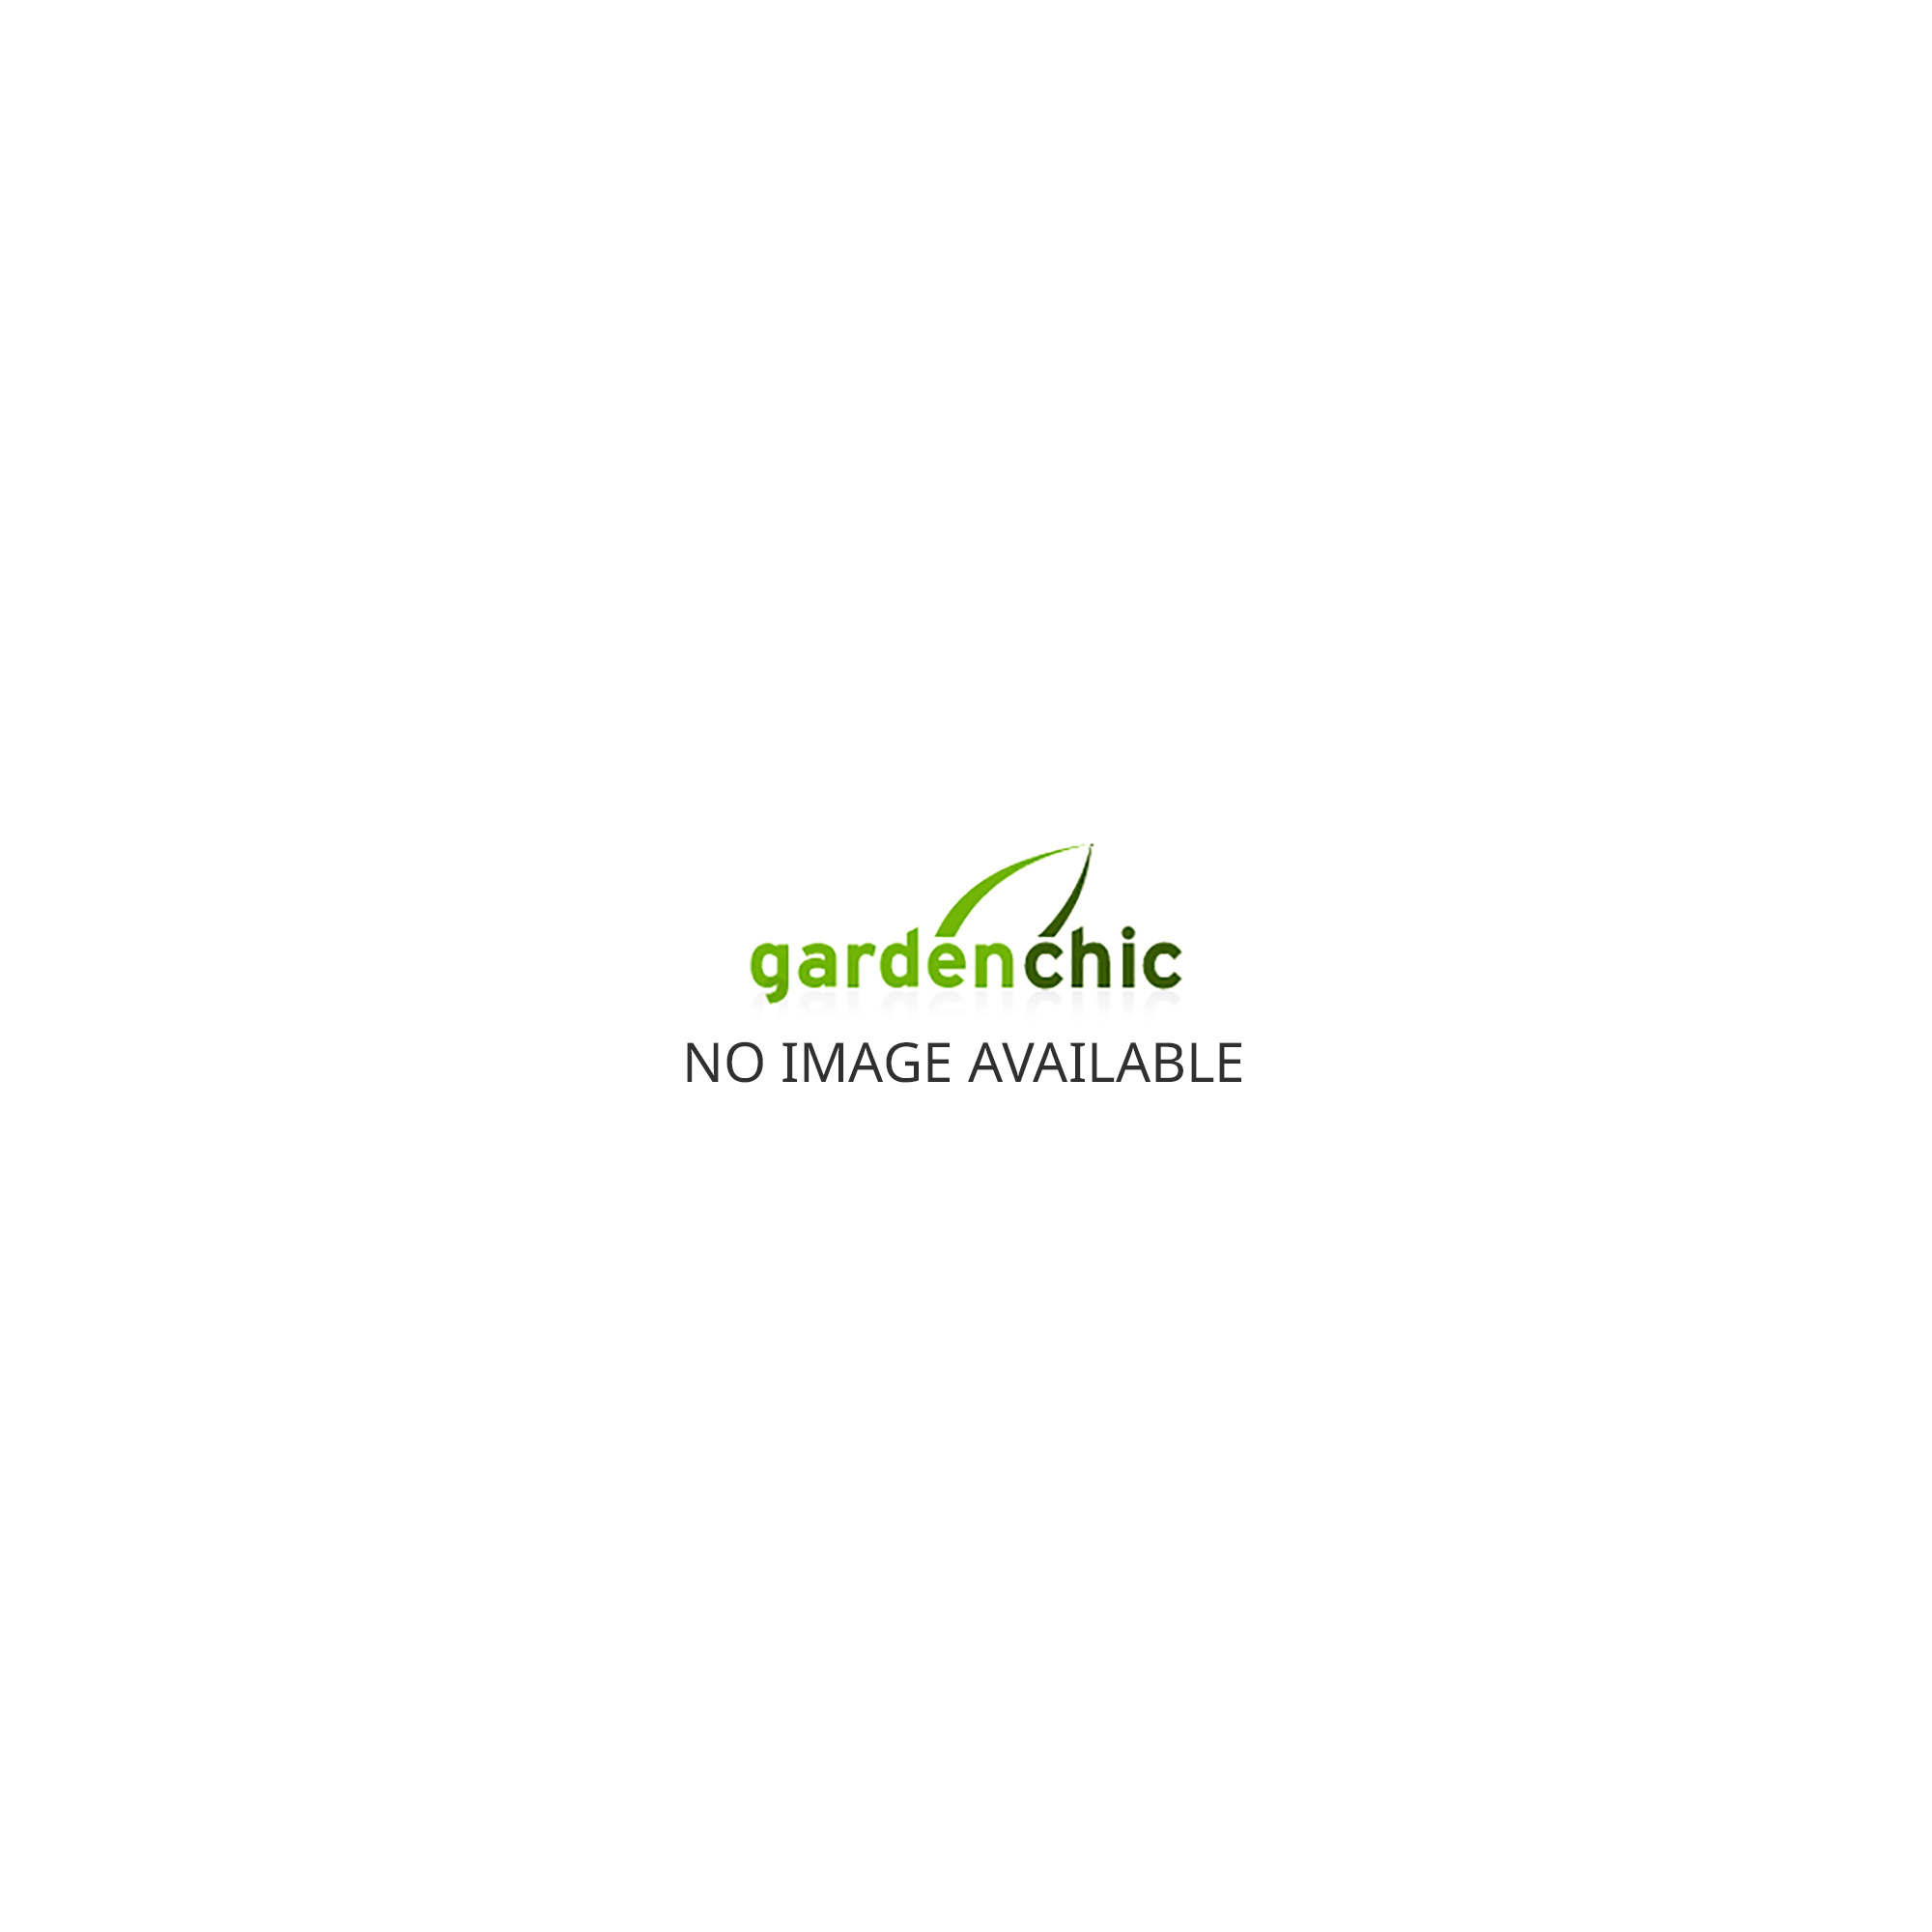 Lean-to Greenhouse 10 x 14 - FREE Staging throughout February 2018